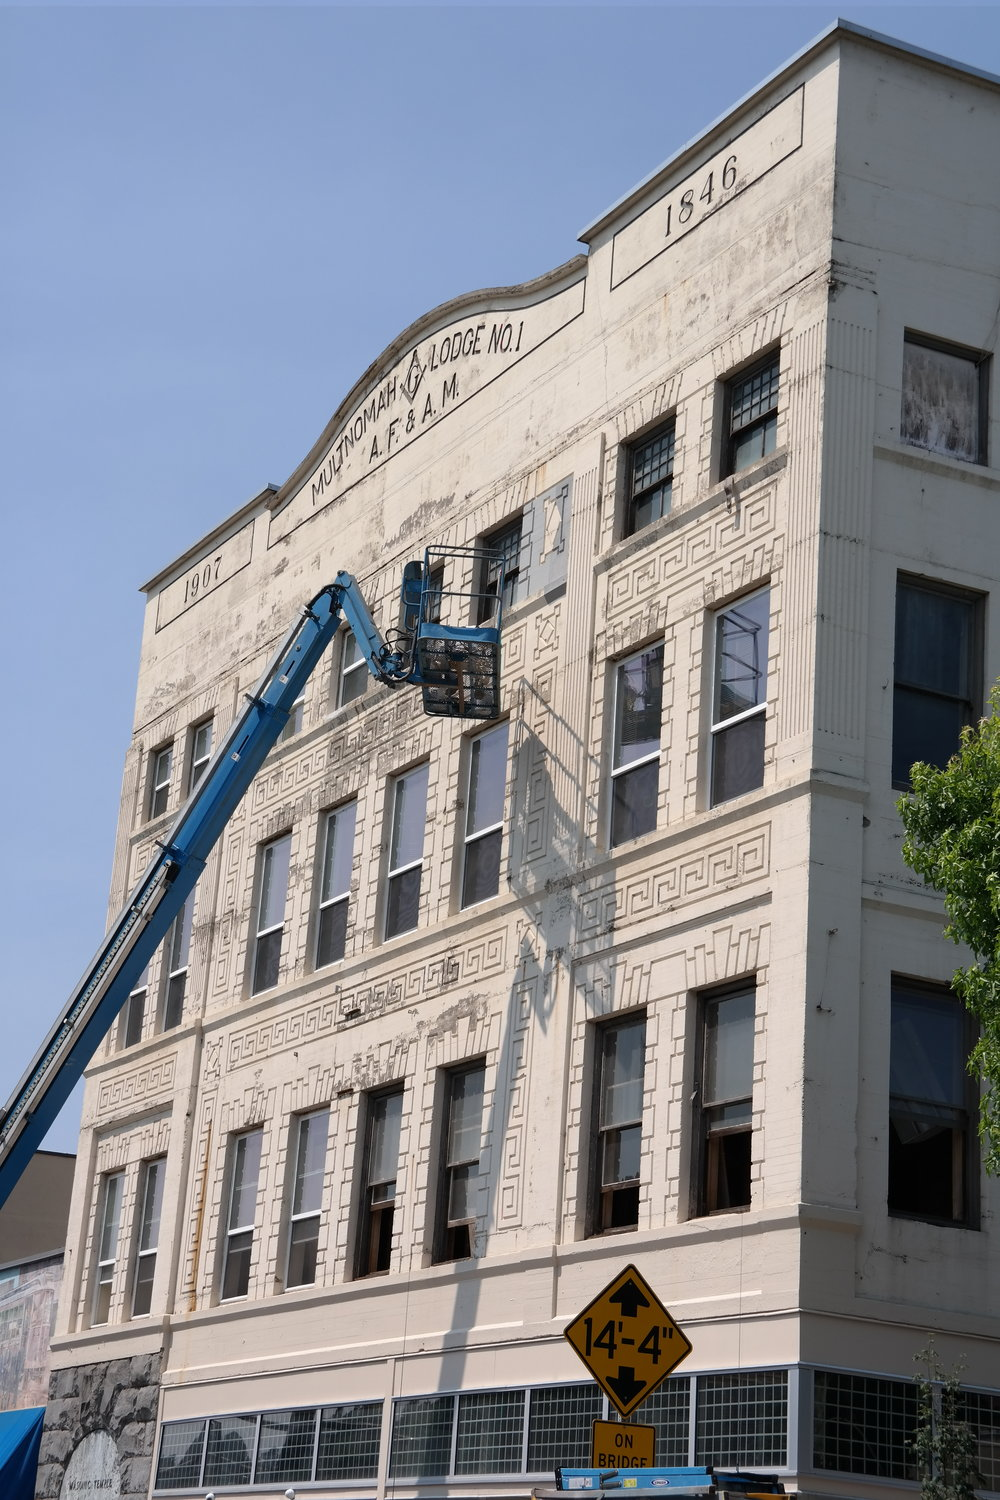 The Masonic Building is repainted in 2014 with the support of a grant that DOCA advocated for.